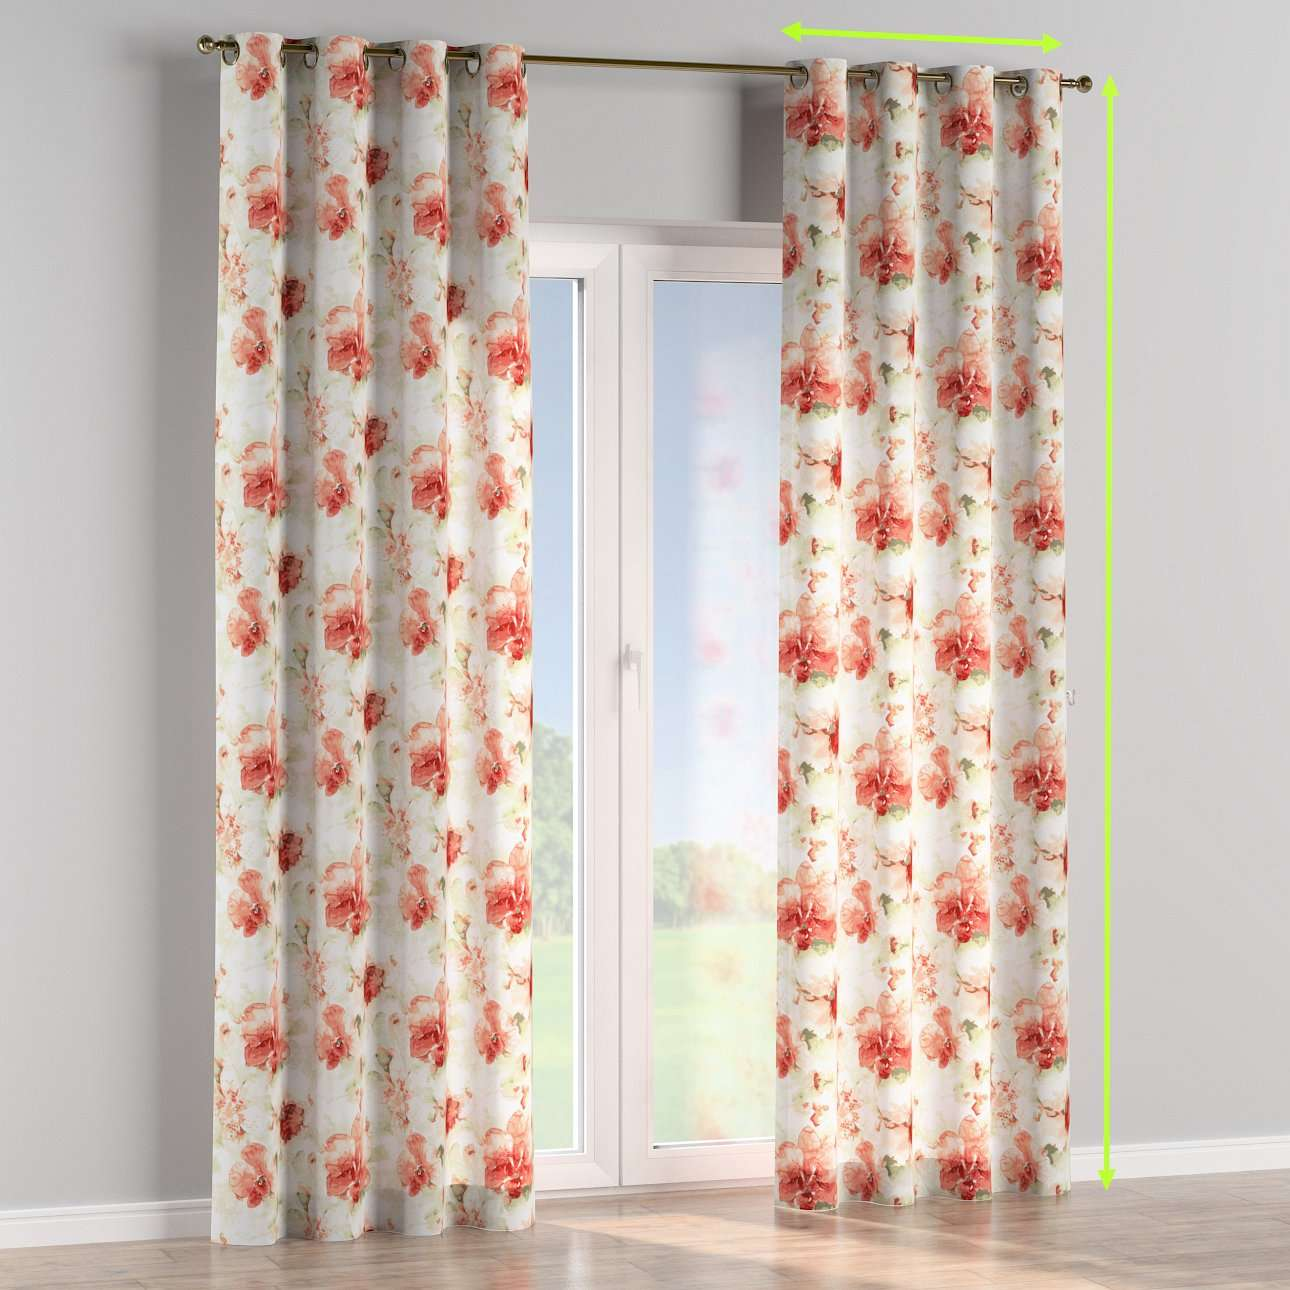 Eyelet lined curtains in collection Acapulco, fabric: 141-34